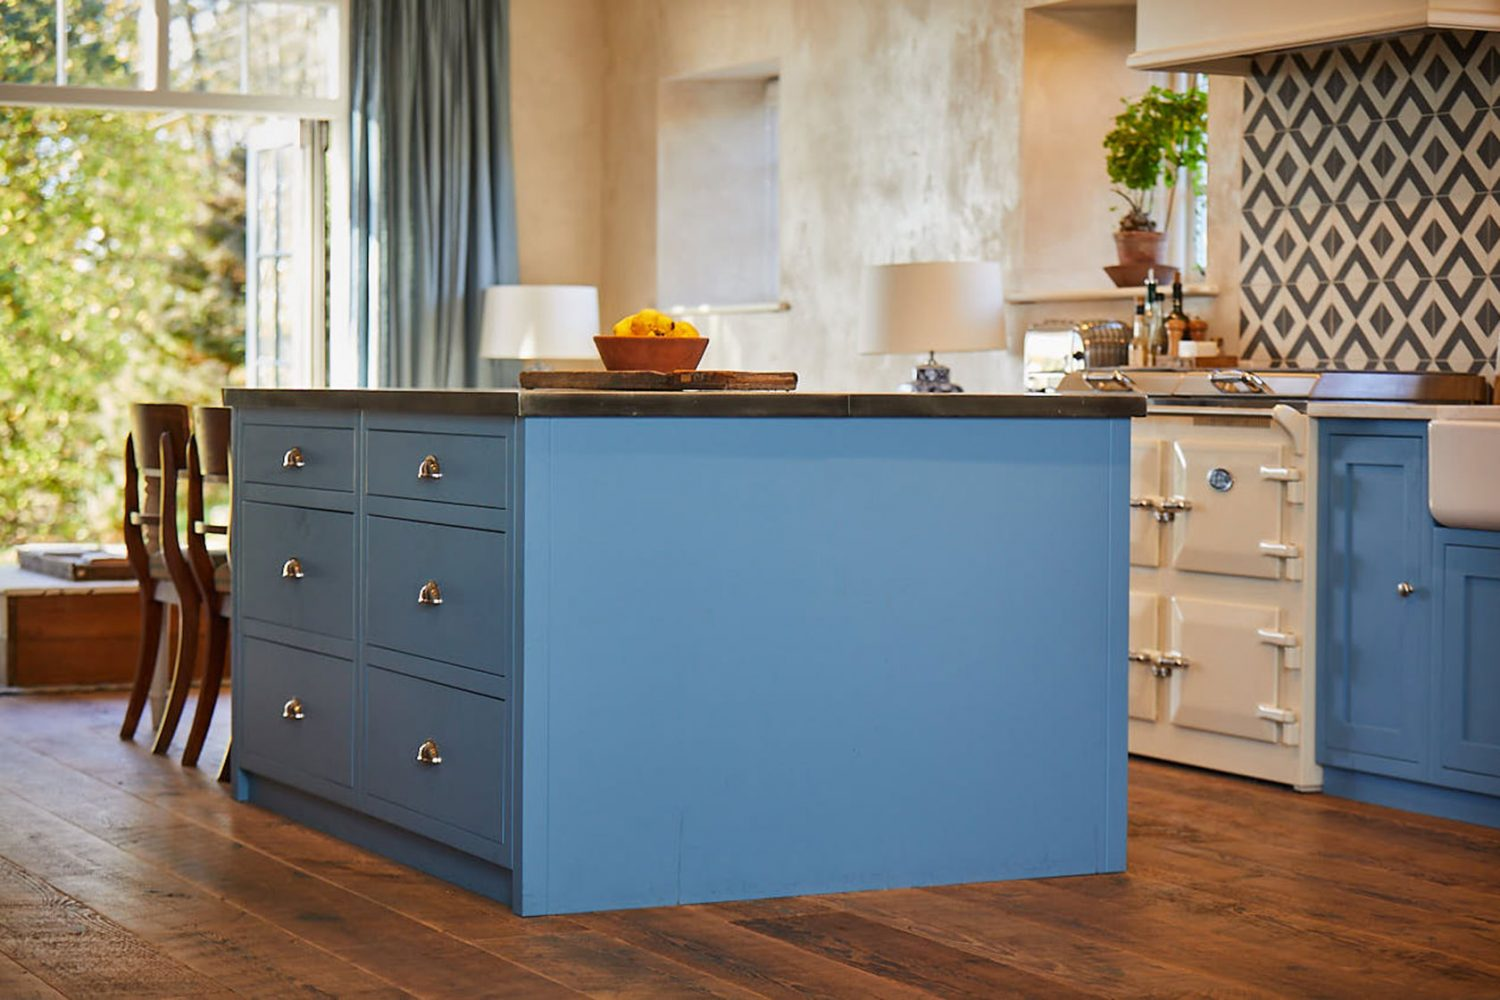 Two pan drawers in bespoke kitchen island with zinc worktop